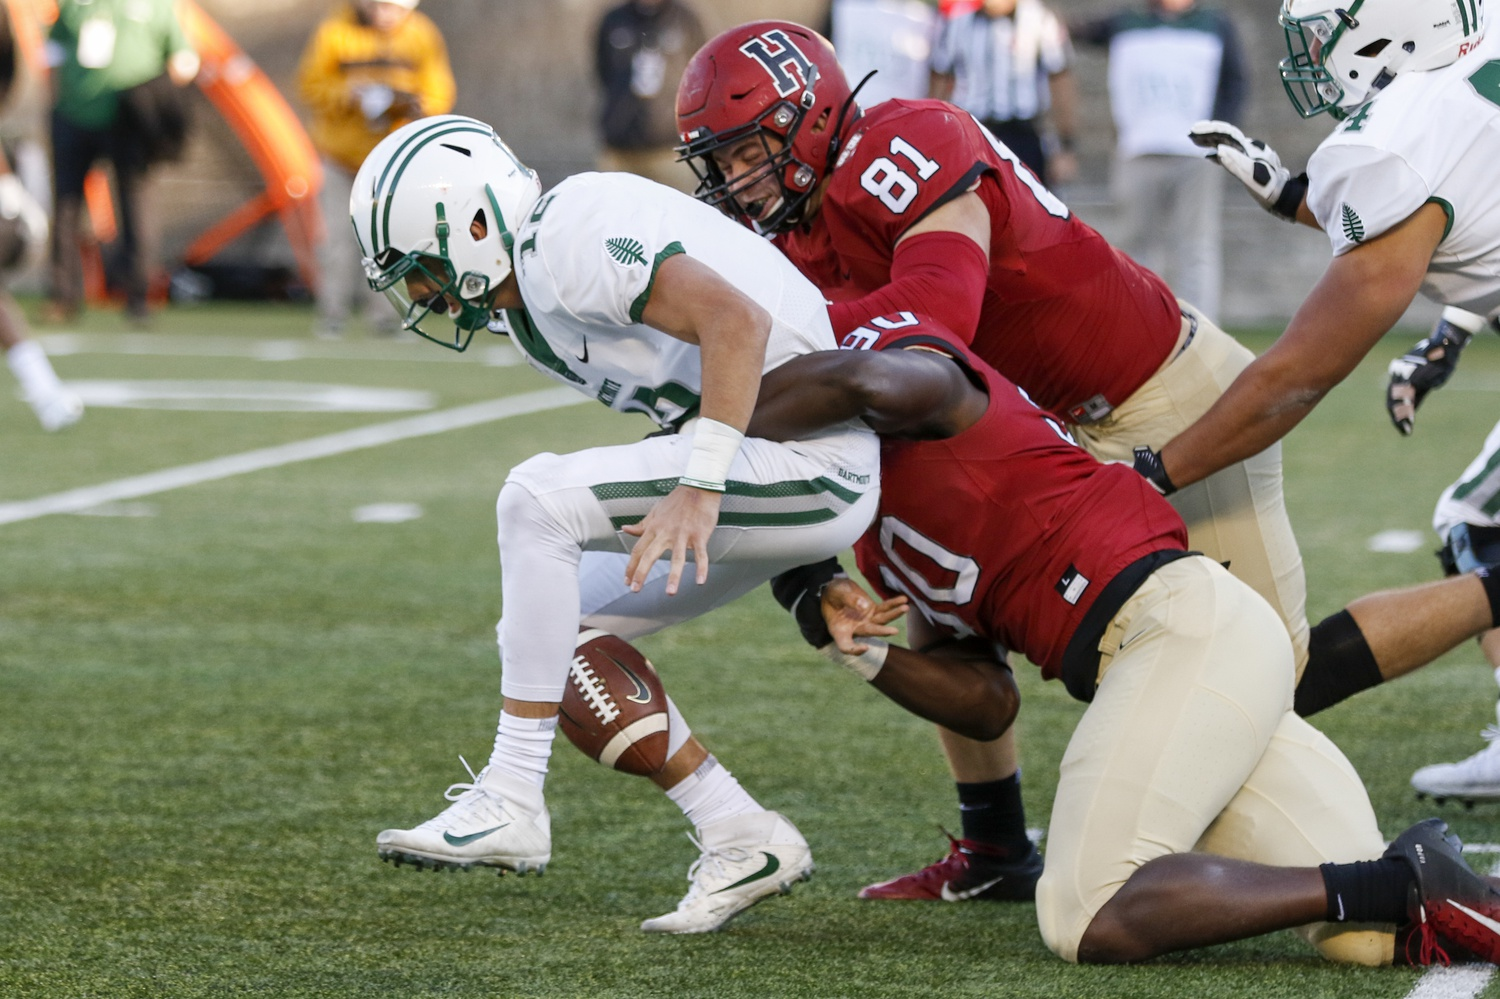 Sophomore defensive lineman Truman Jones strips Dartmouth quarterback Derek Kyler. The change of possession returned the ball to Harvard with the lead and 1:19 to burn.